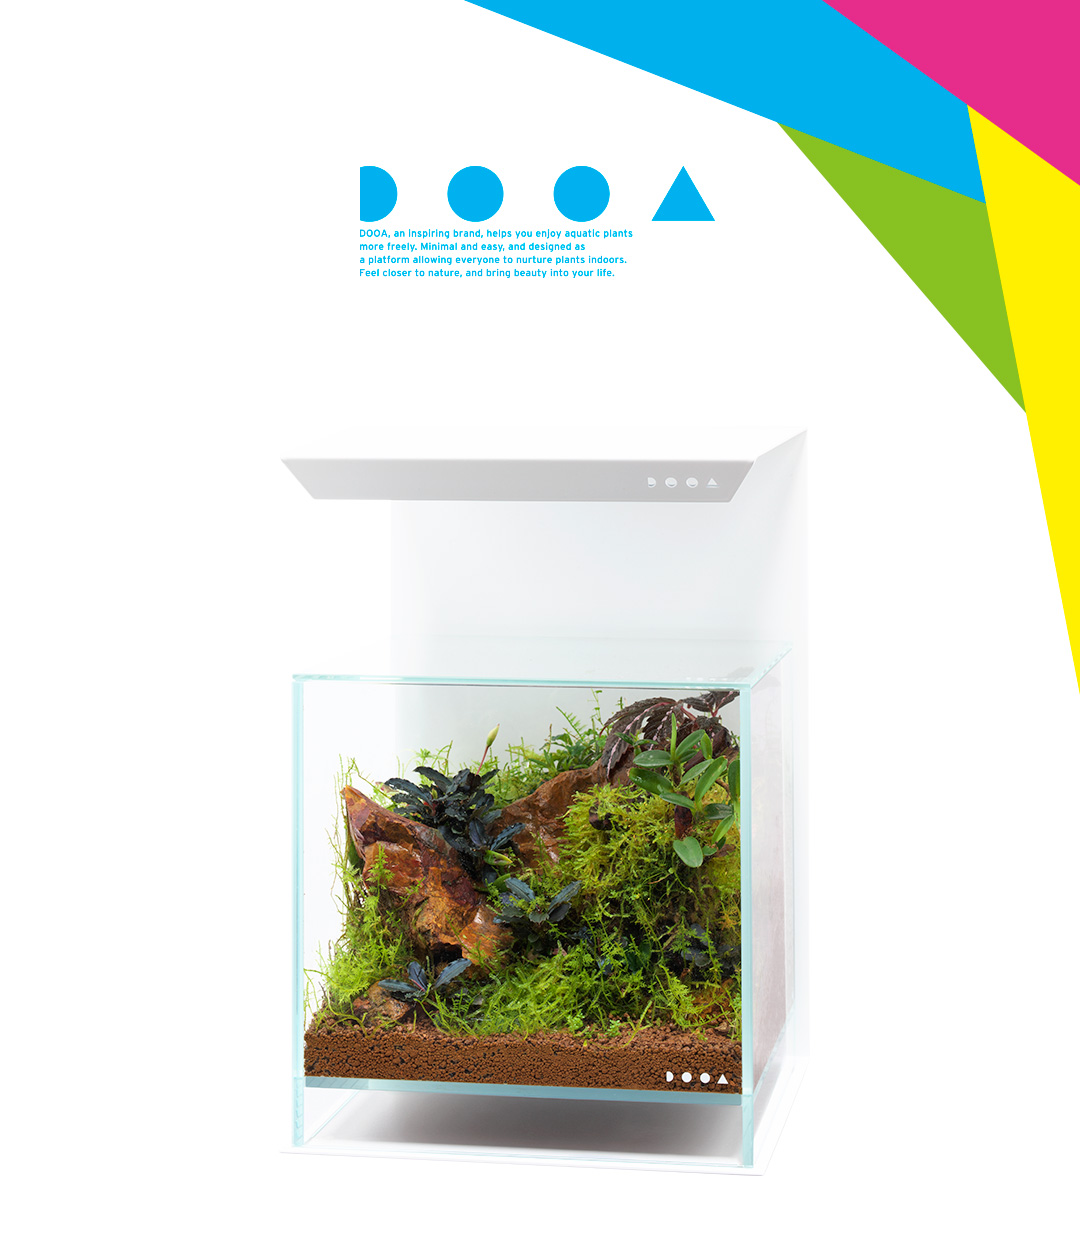 DOOA PALUDARIUM 'Imagine the Natural Habitat of Tropical Plants'